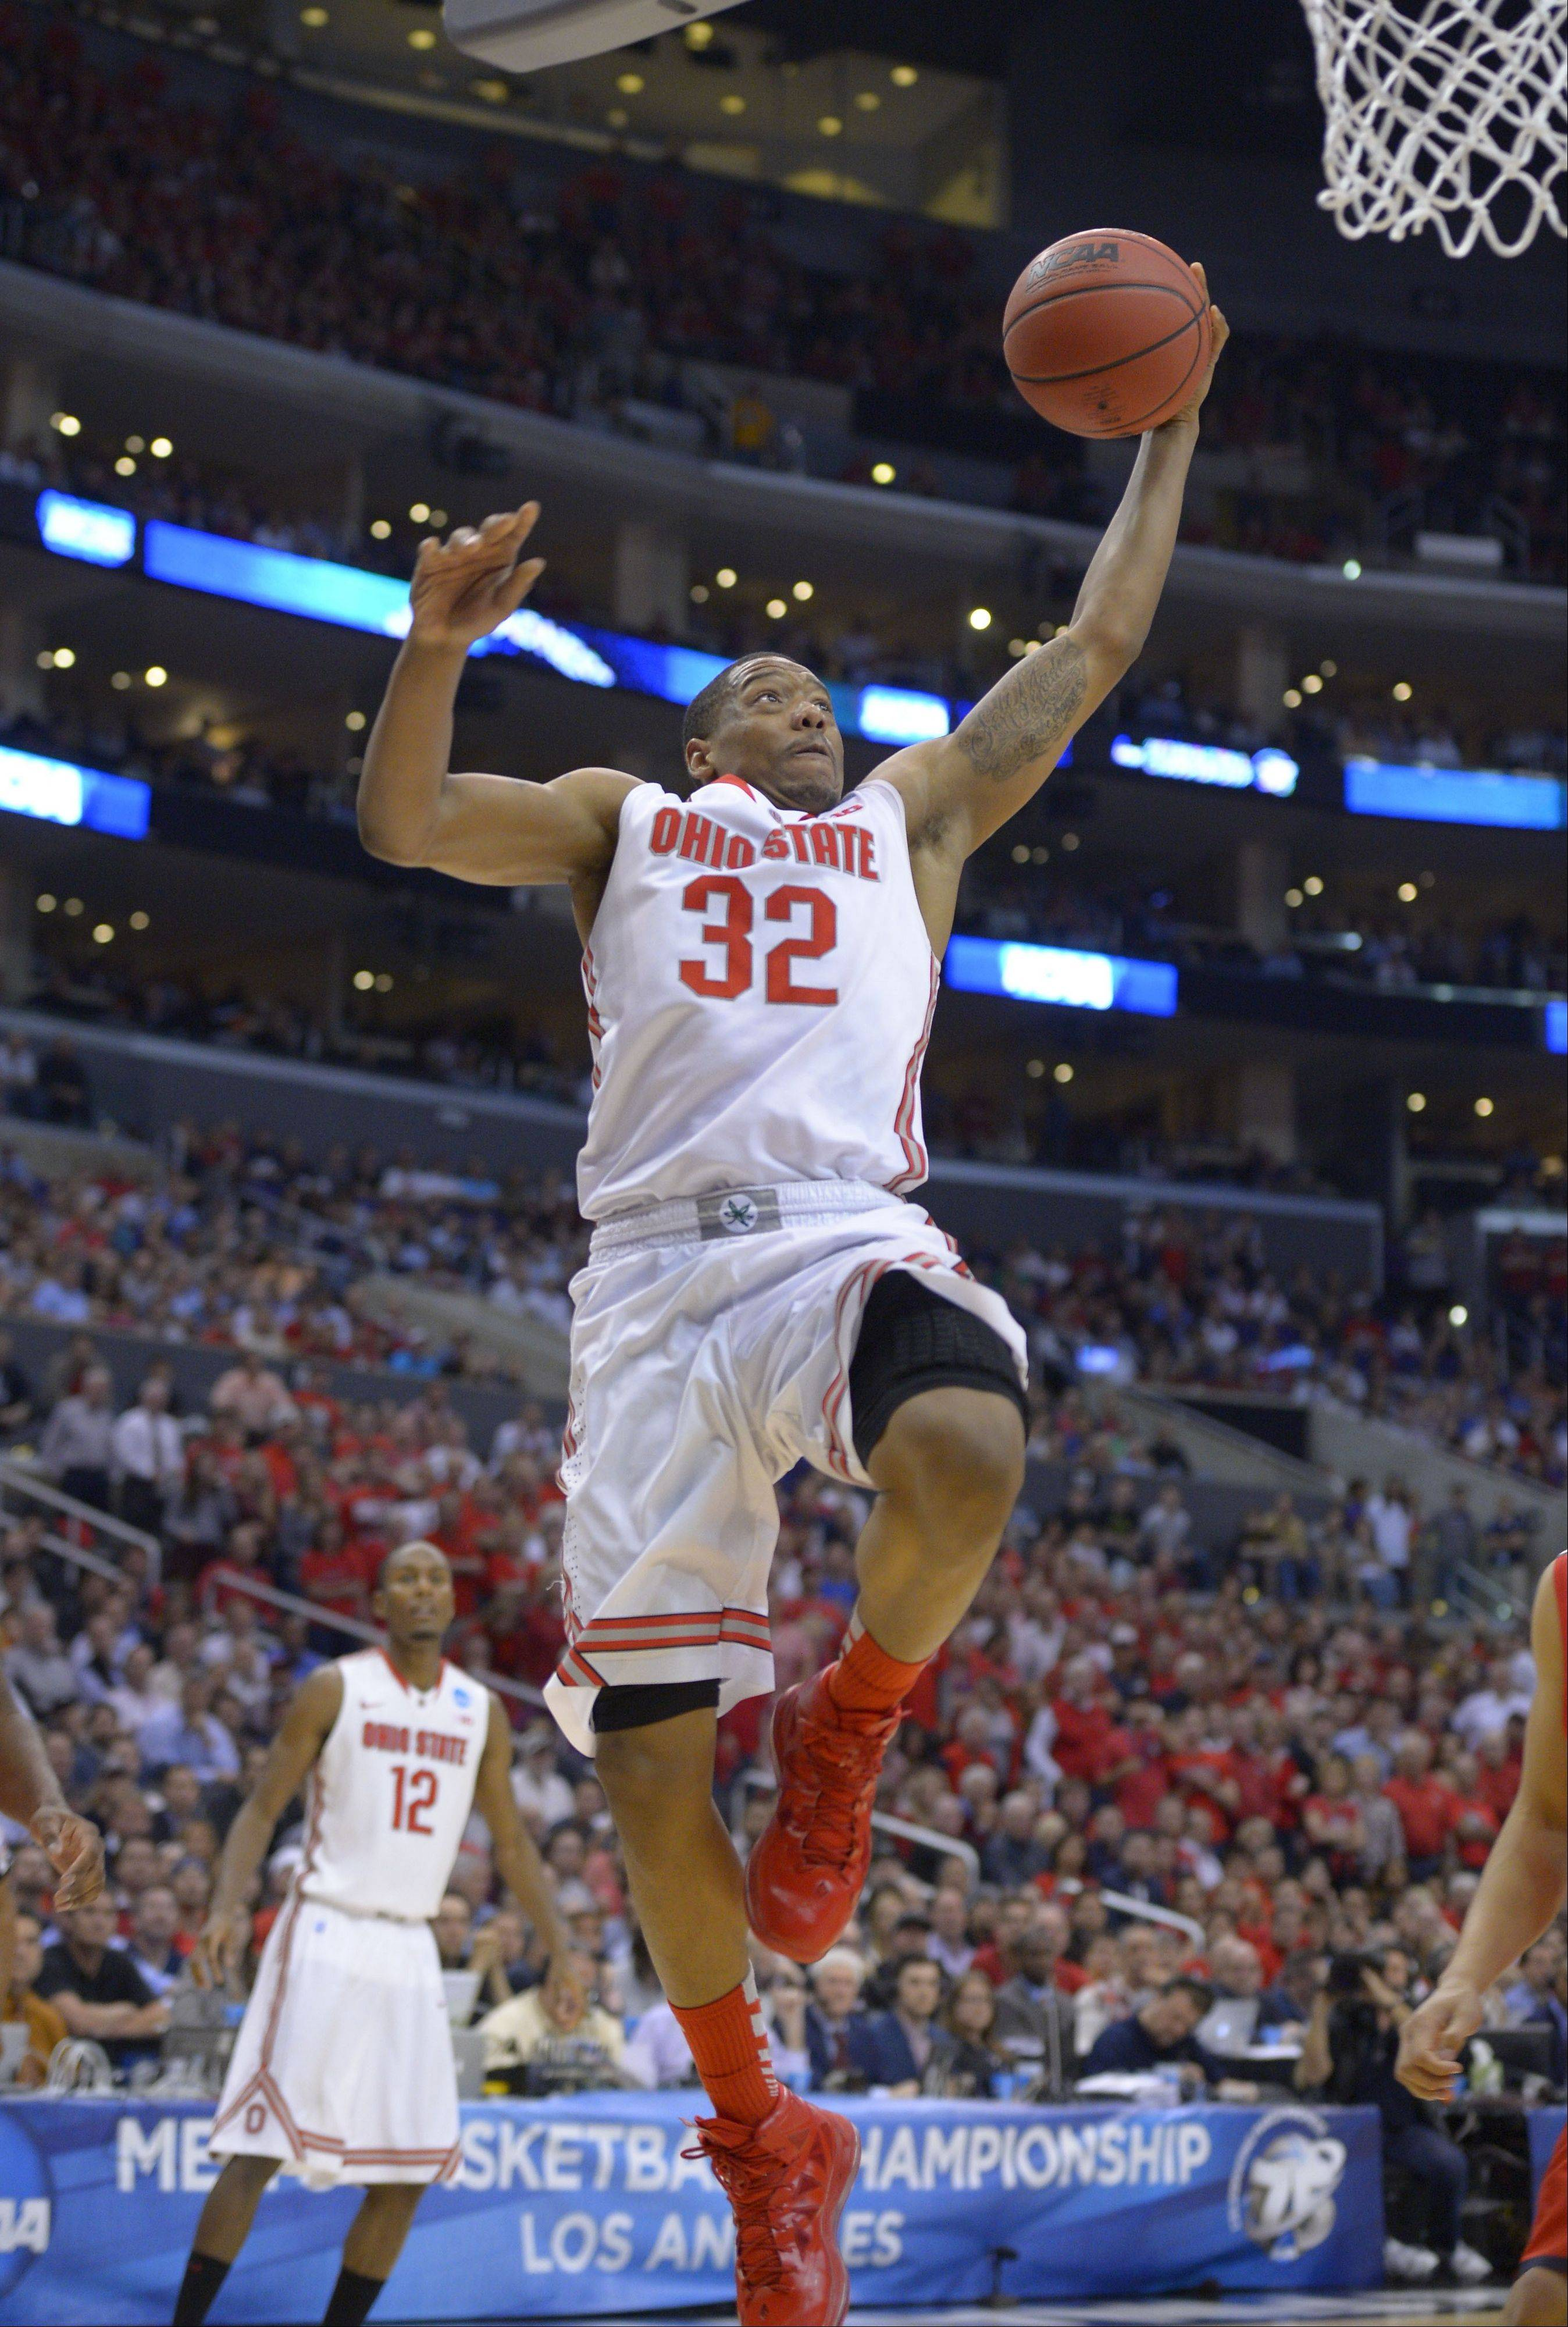 Ohio State�s Lenzelle Smith Jr. is part of a veteran crew that includes two seniors and seven juniors from a 29-win squad that came within a whisper of a second straight trip to the Final Four.